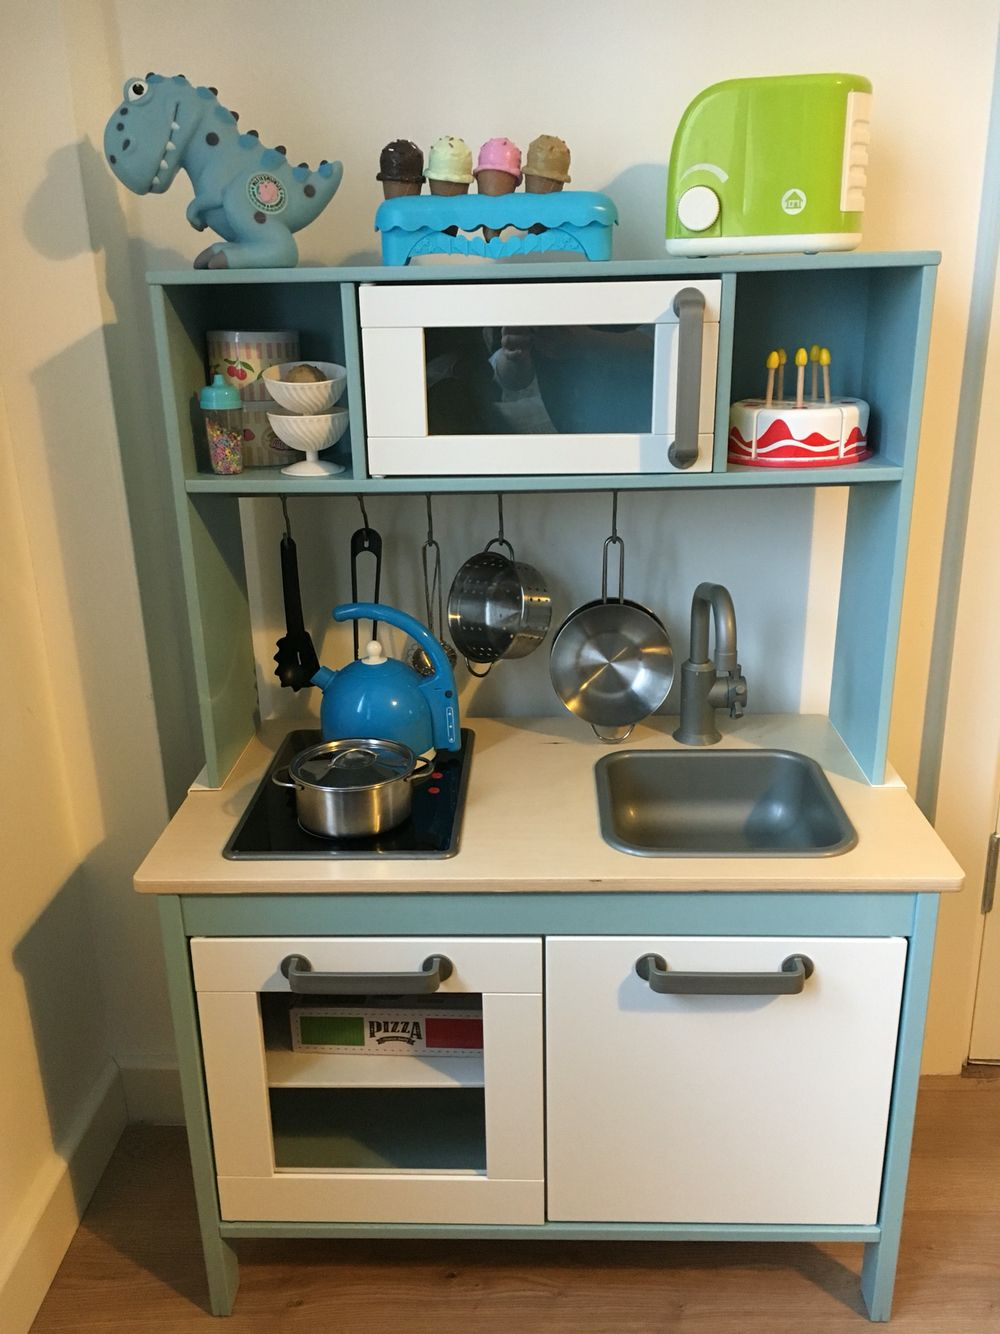 ikea duktig kitchen hack for a little boy kinderzimmer pinterest kinderzimmer kinderk che. Black Bedroom Furniture Sets. Home Design Ideas